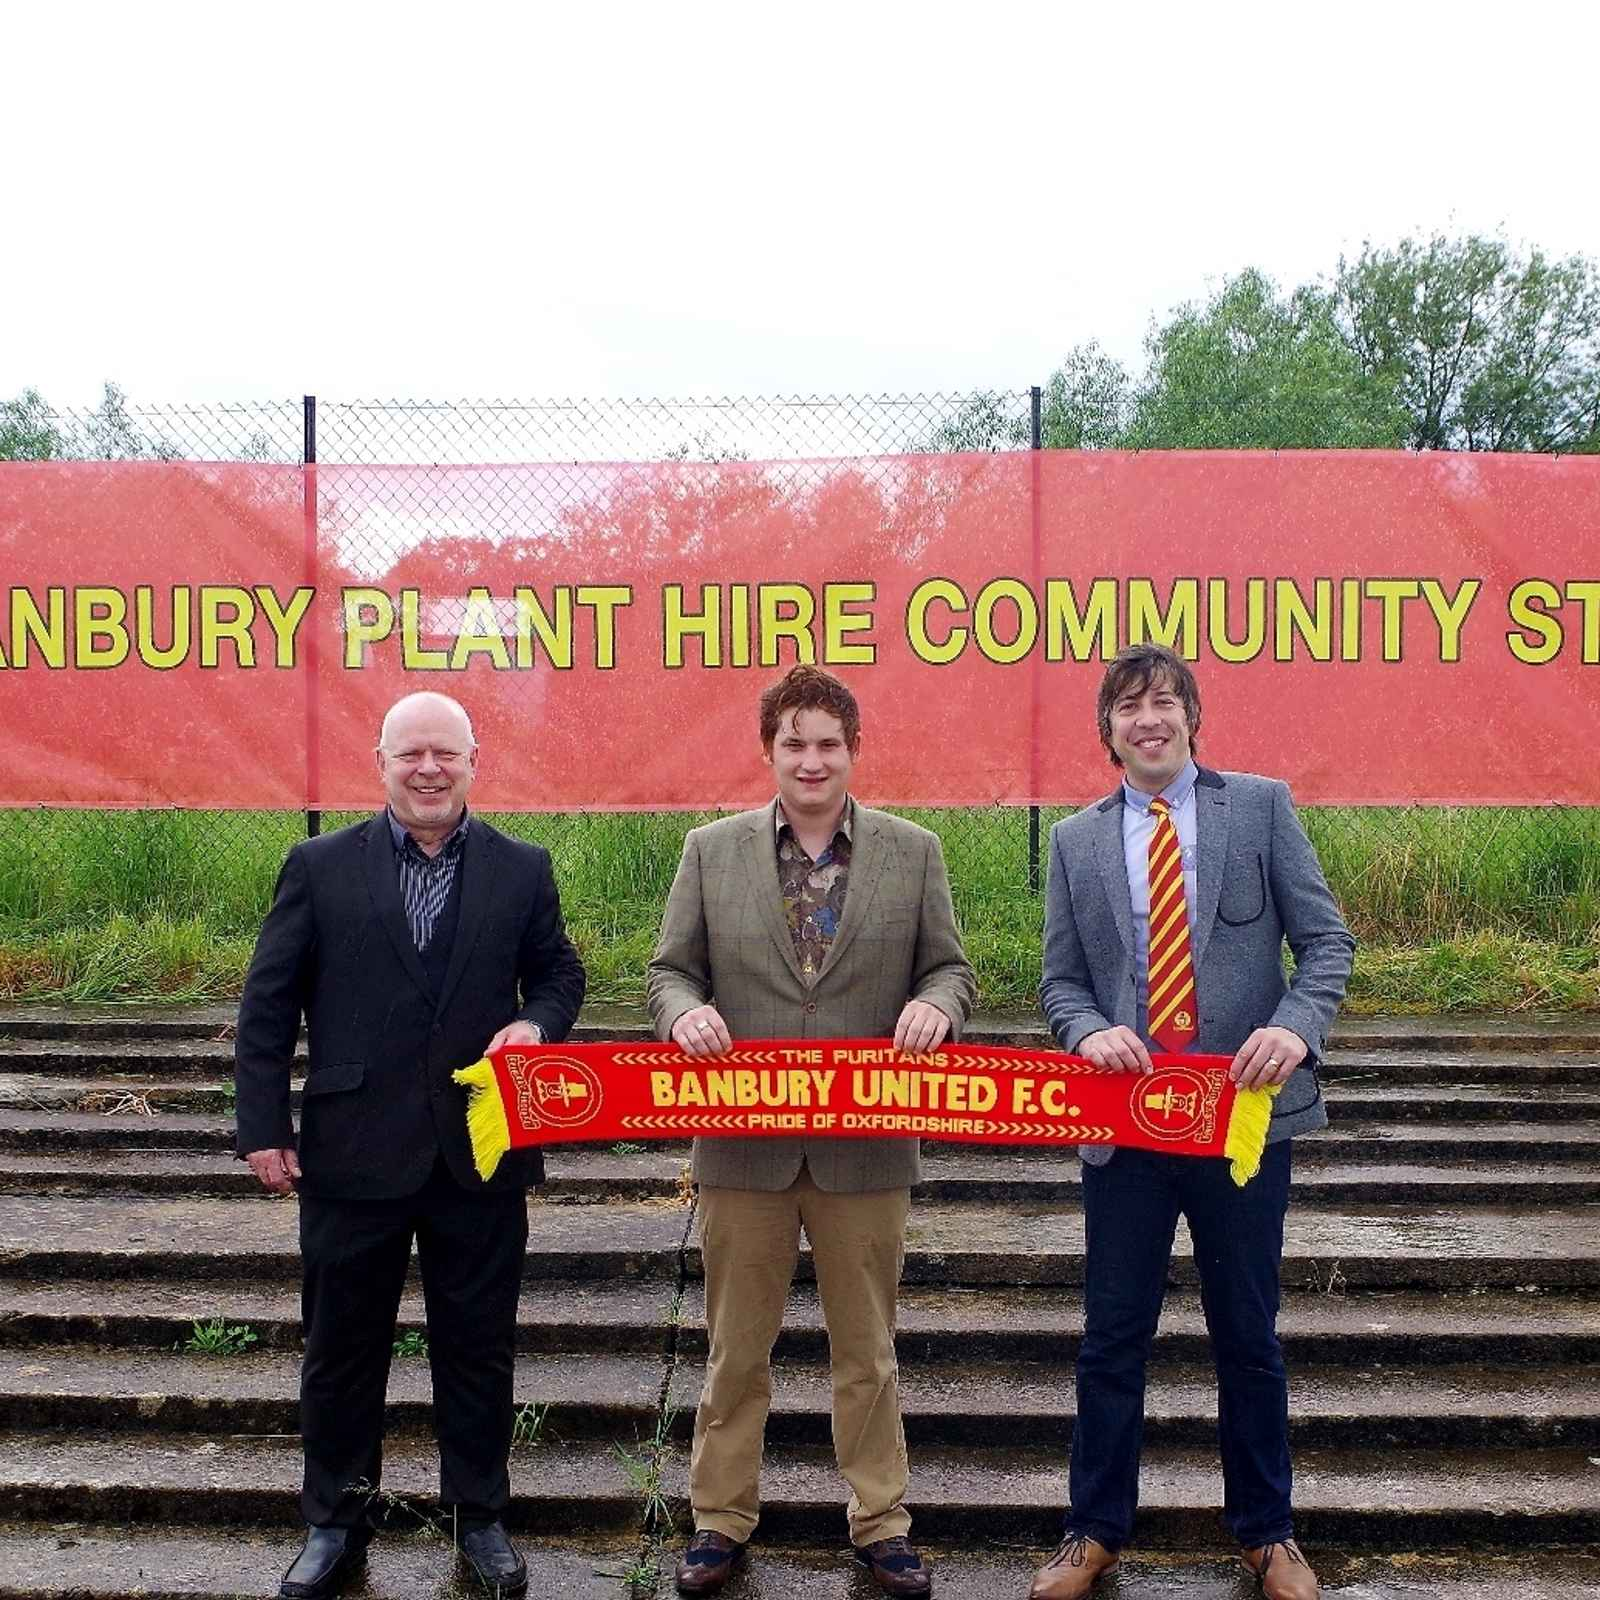 Banbury United's Stadium renamed in 3-Year sponsorship deal with Banbury Plant Hire